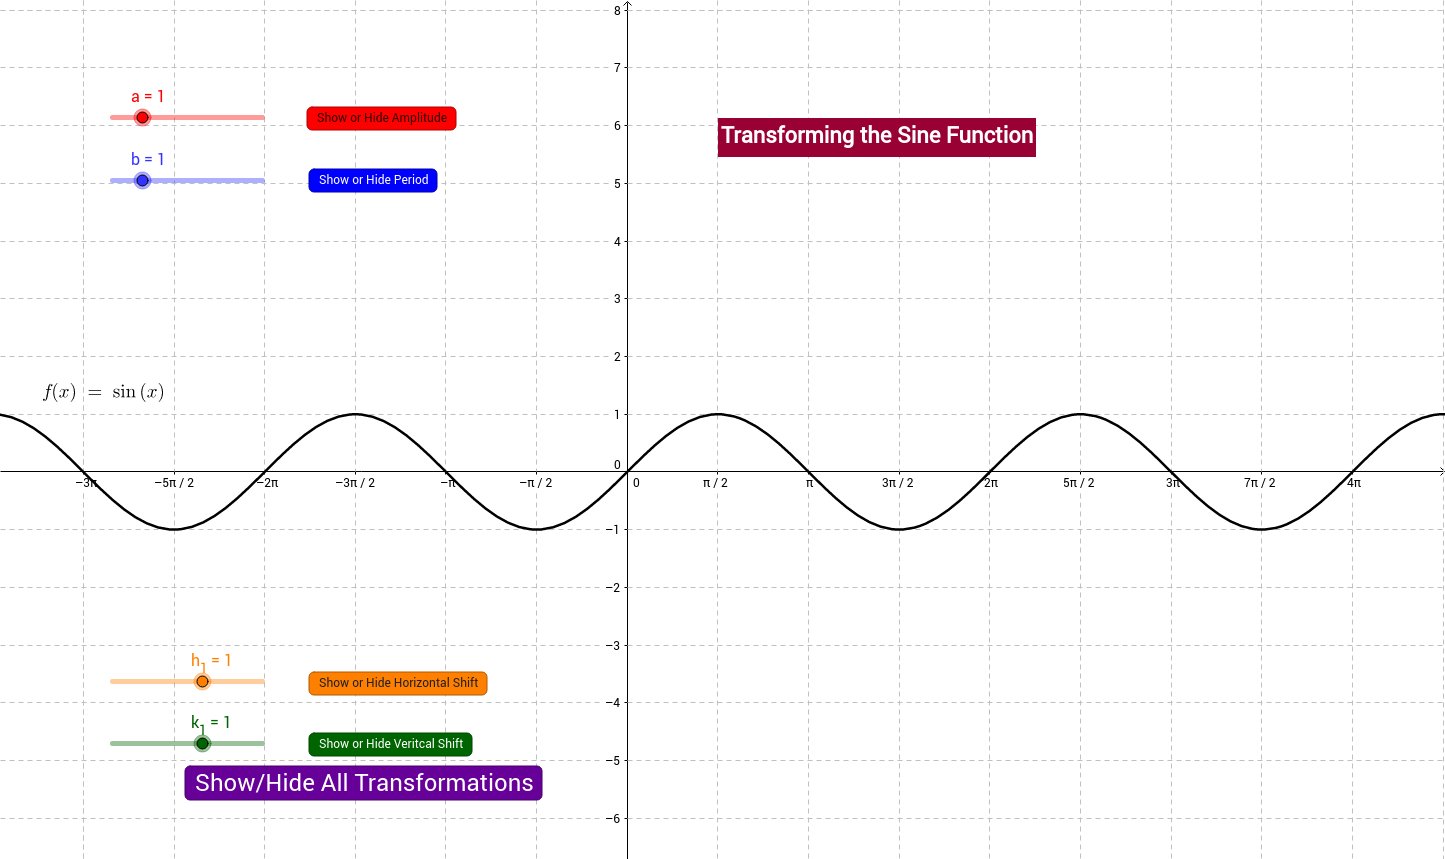 Transforming the Sine Function